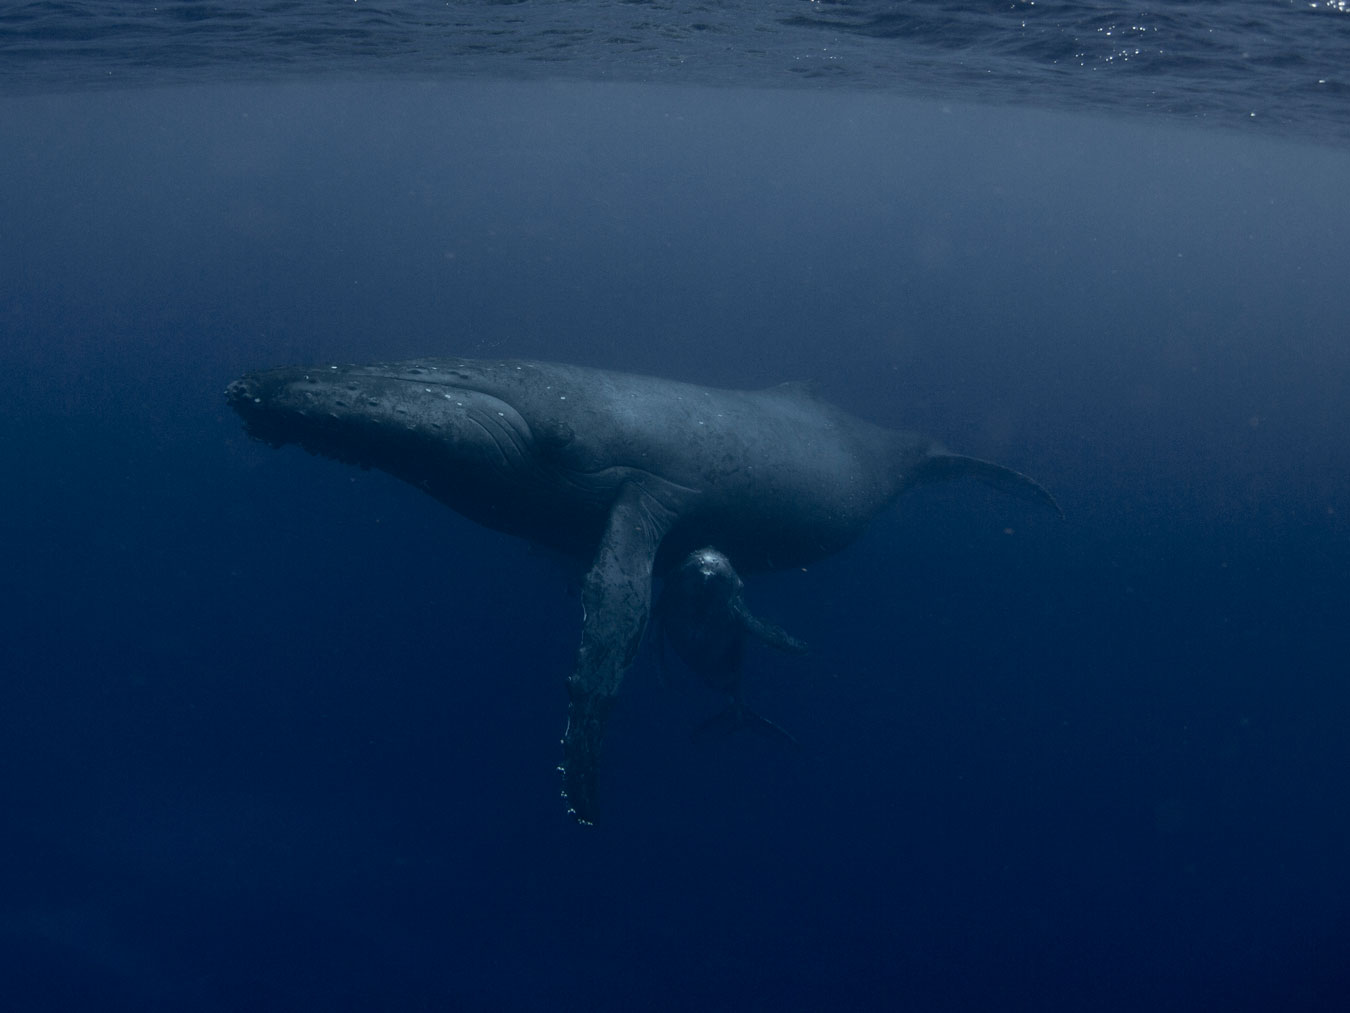 under-water-photography-of-humpback-whale-and-young-calf-nestled-close